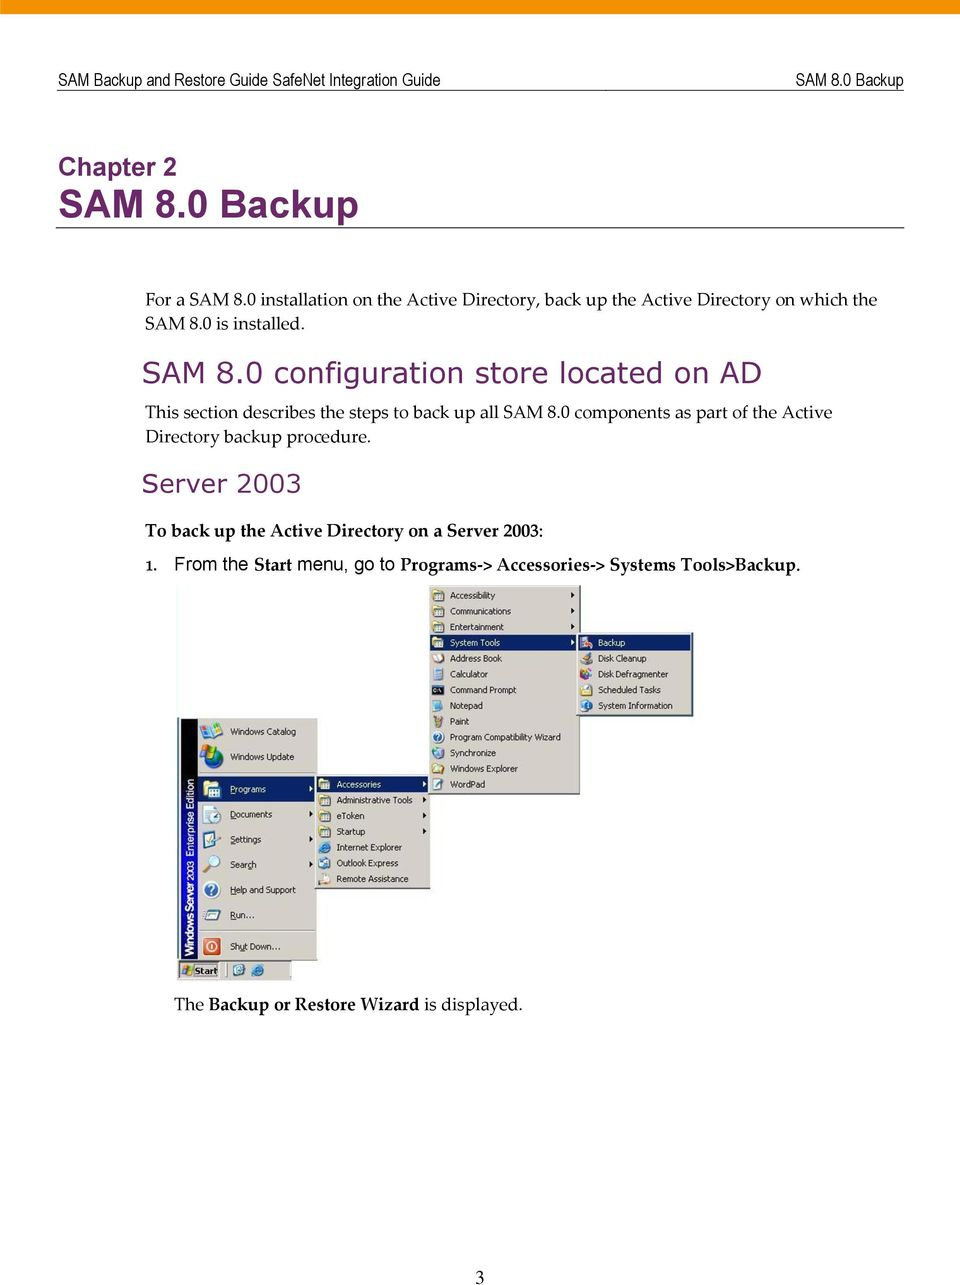 0 is installed. SAM 8.0 configuration store located on AD This section describes the steps to back up all SAM 8.